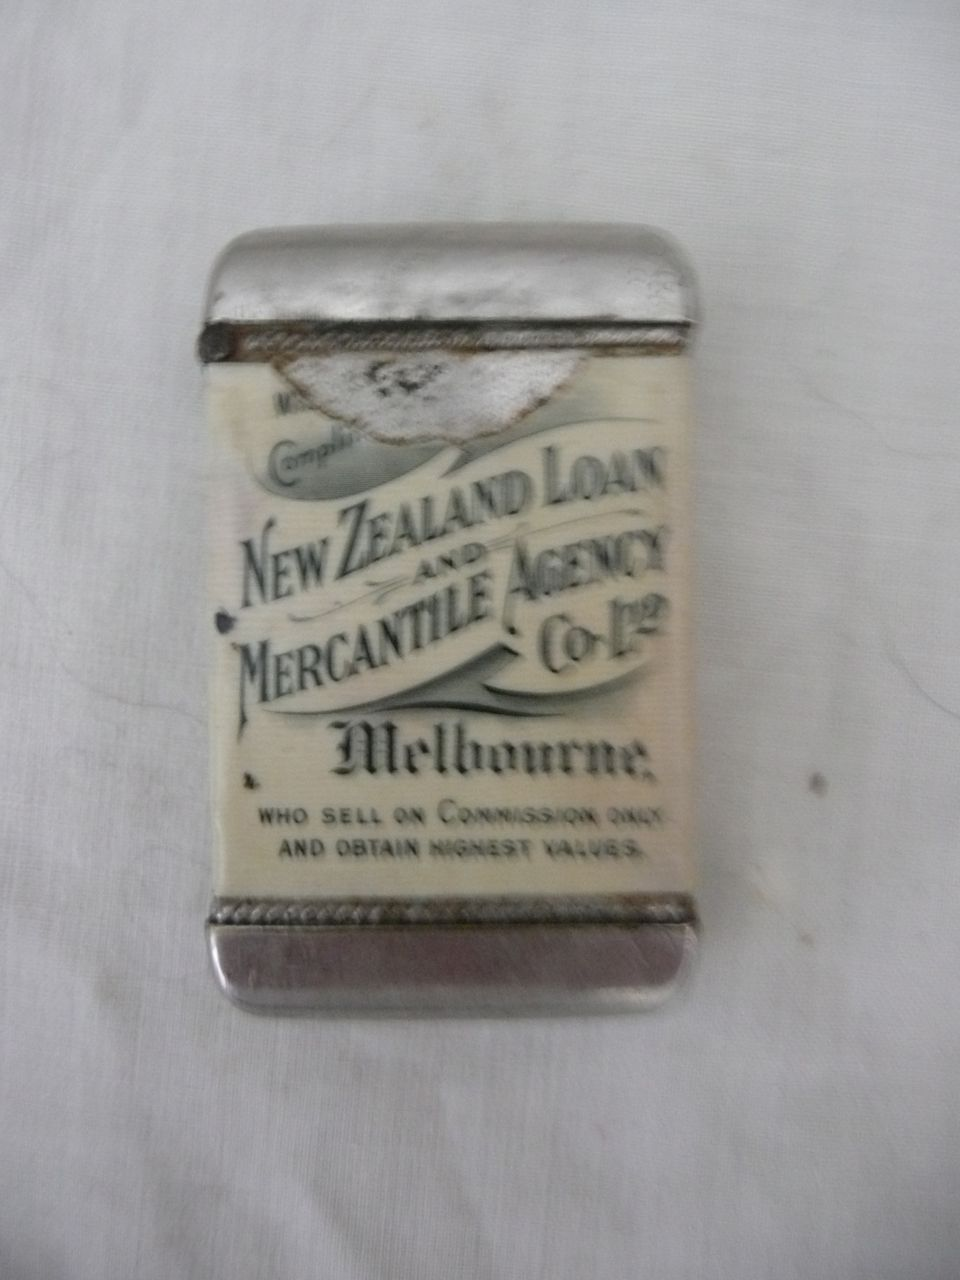 Rare Old Advertising Vesta Case for NZ Loan & Mercantile Agency Ltd